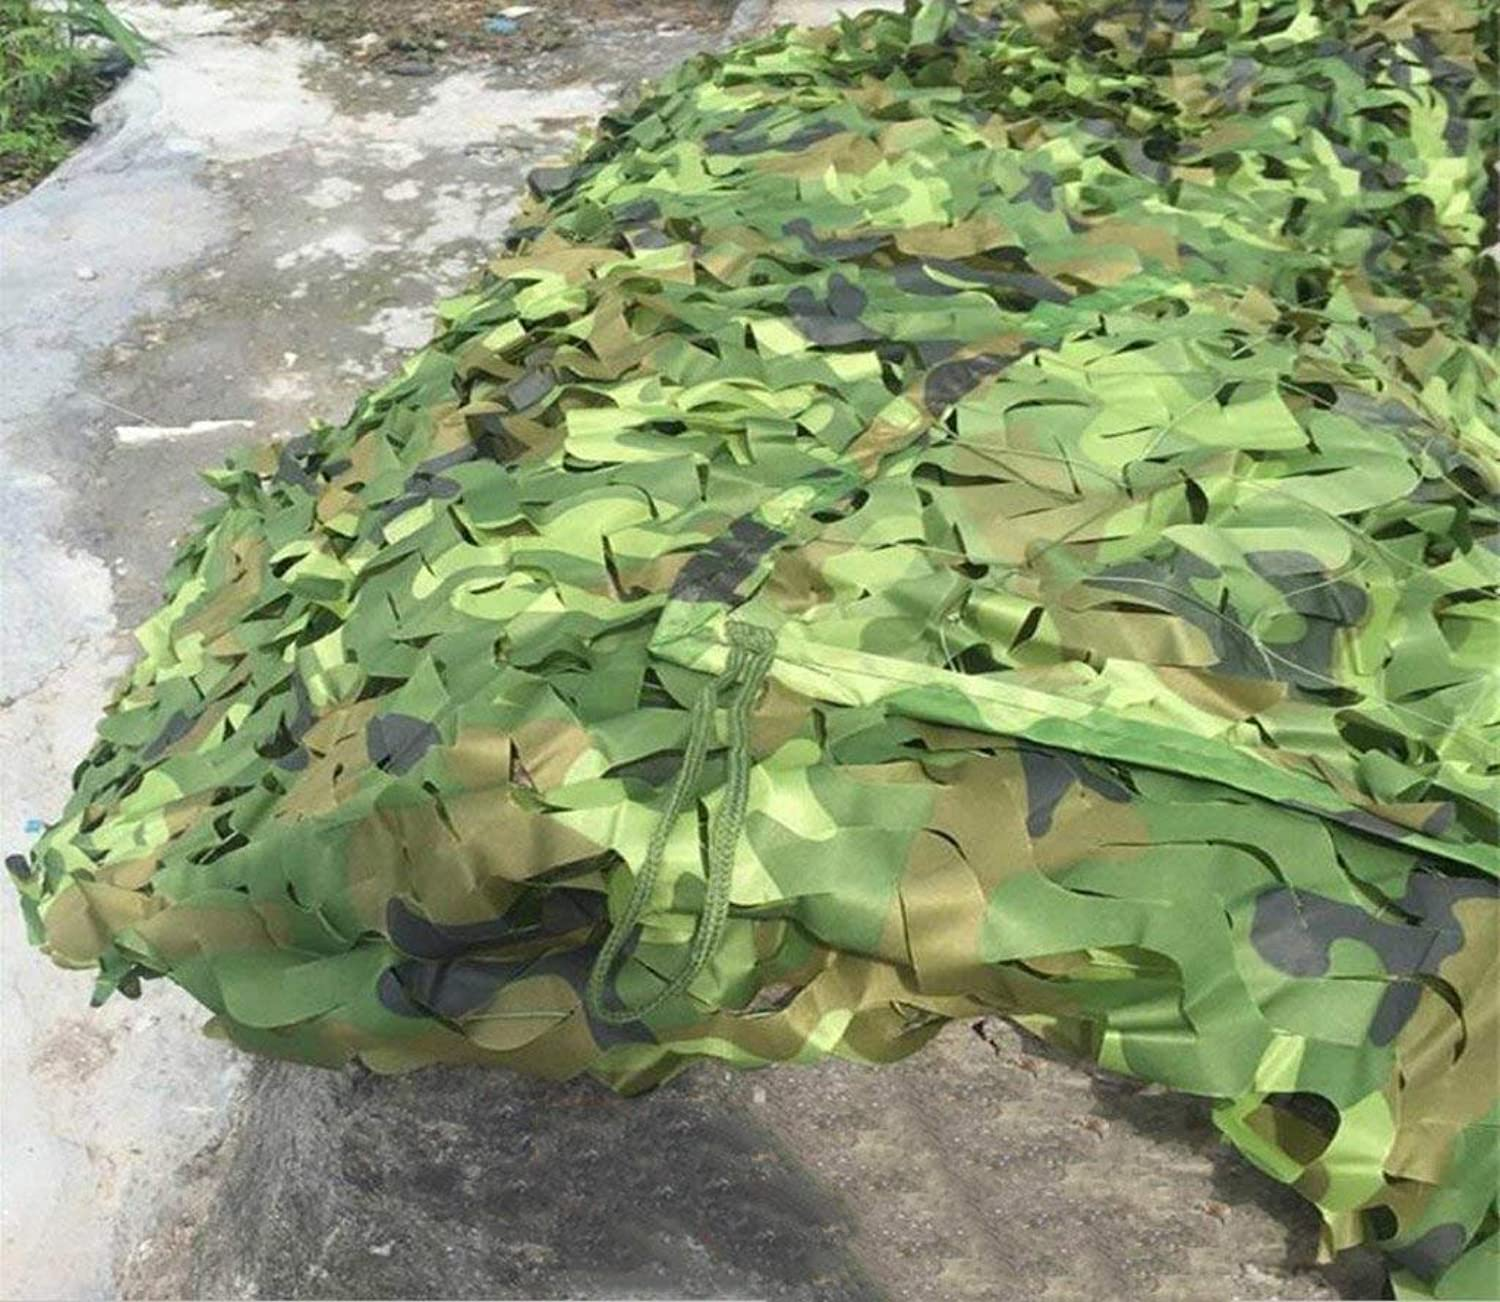 Military Sunshade Net Household Waterproof Insulation Camouflage Net Outdoor Jungle Camouflage Net Botanical Garden Flower Predection Net Decoration Net Green 9 Size (Size   3x3m)